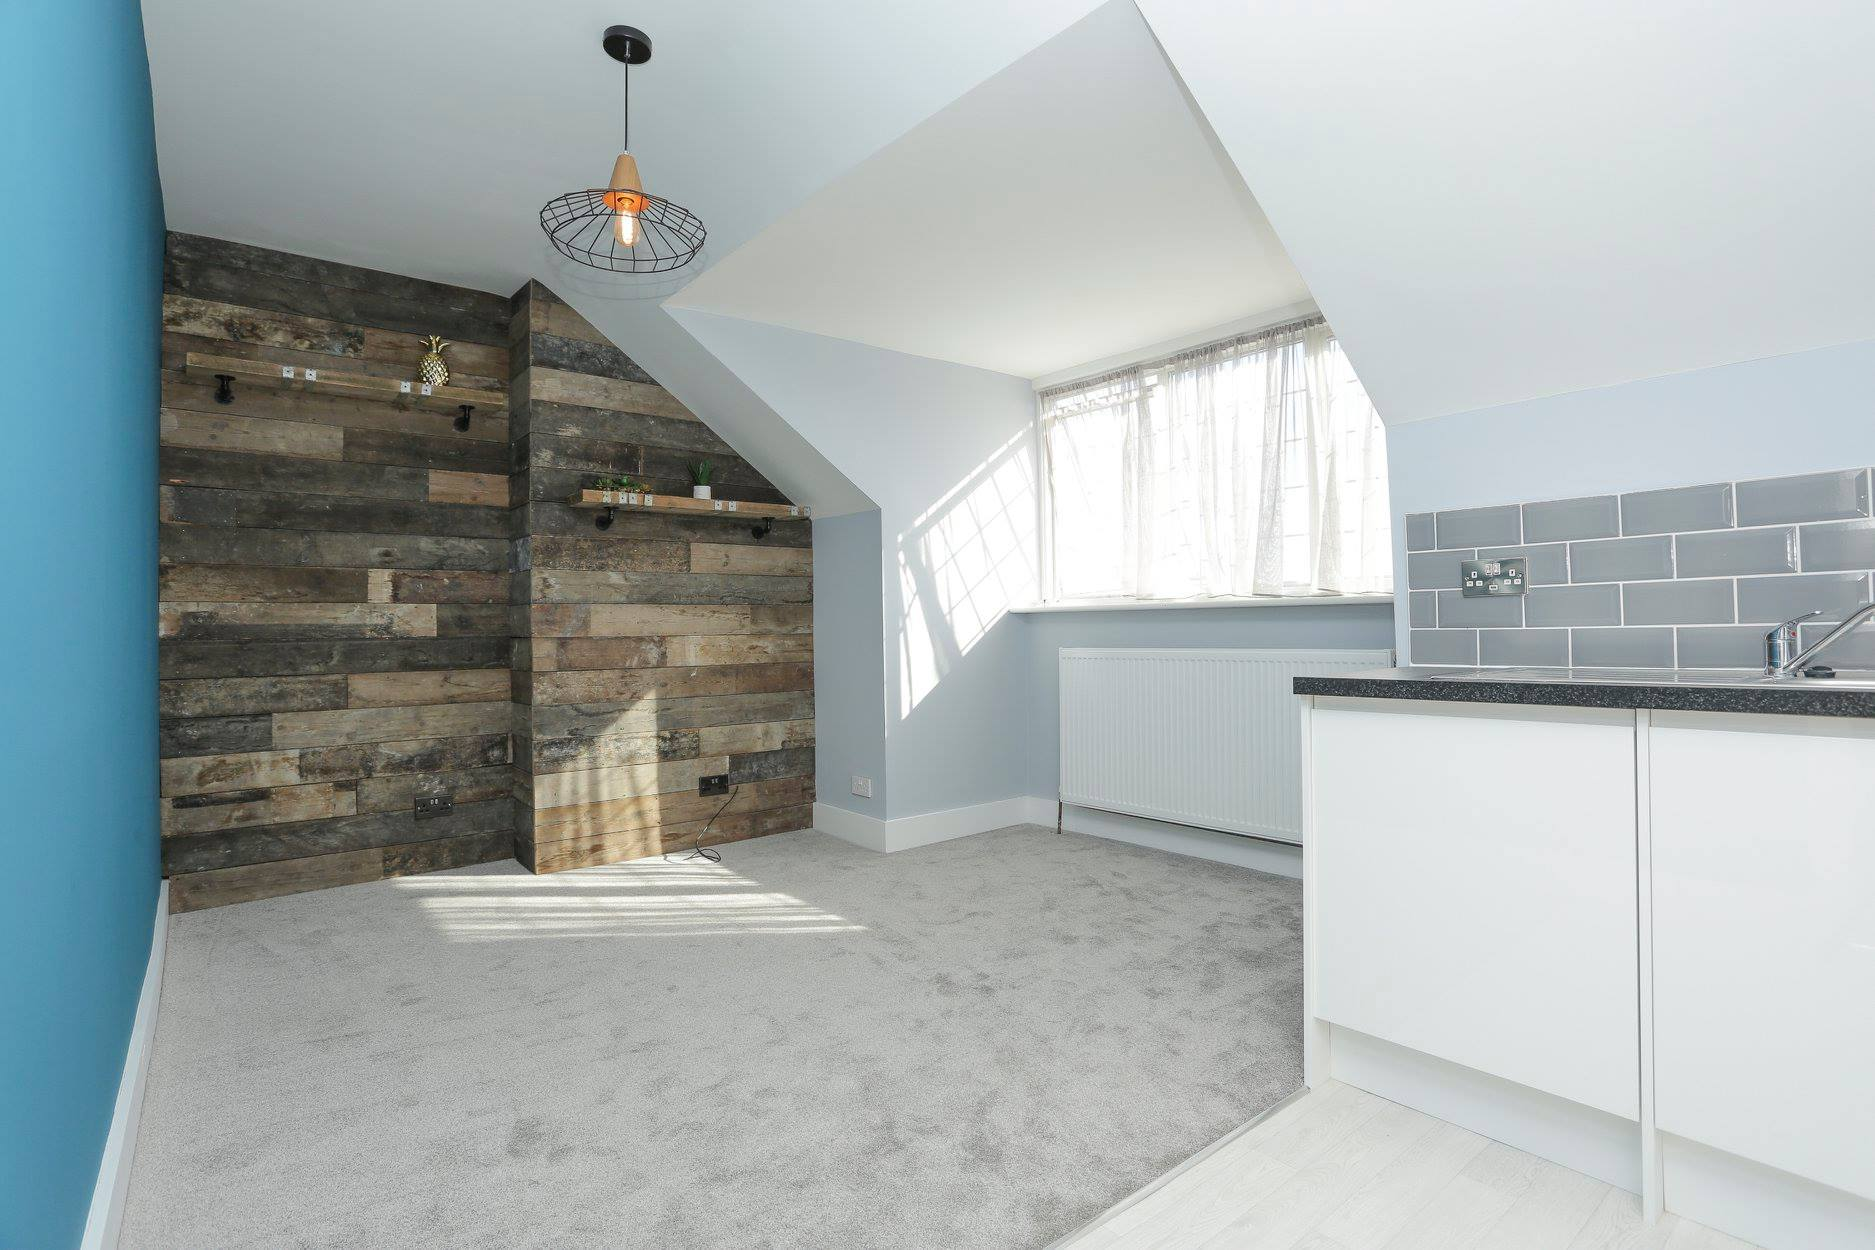 Studio to one-bed apartment upgrade in Surrey Road